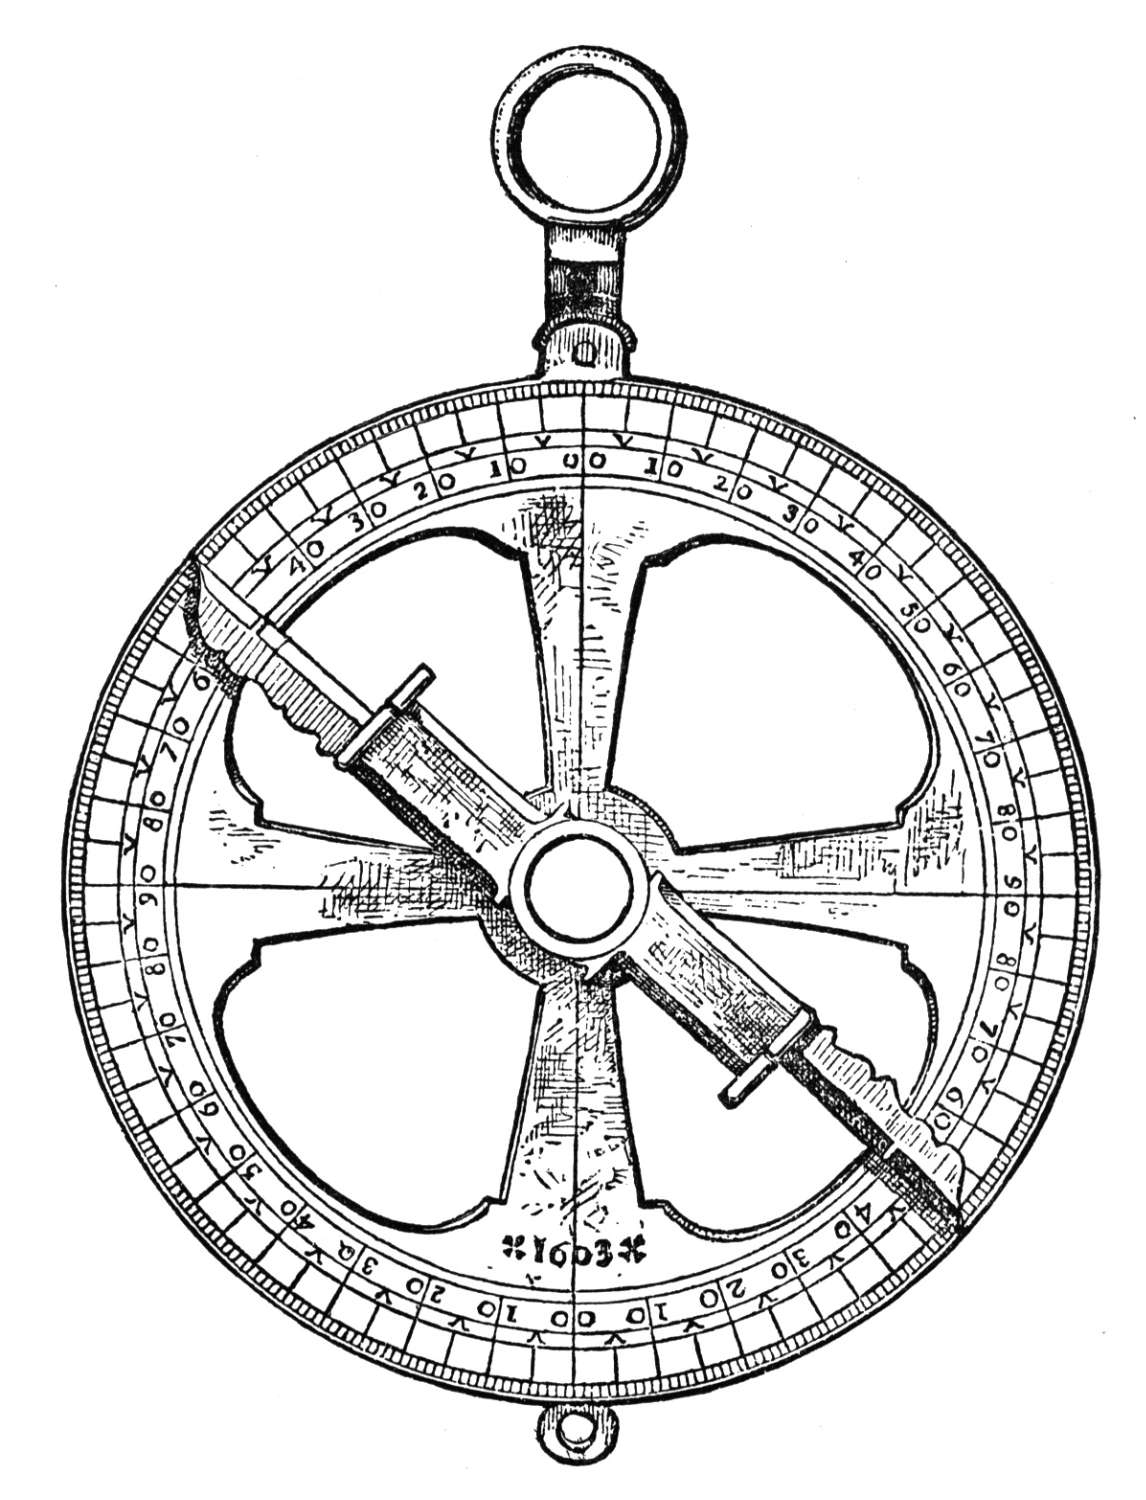 Astrolabe Image Report Inventory Number 52473: Some Of The Greatest Astronomers In History Are Women